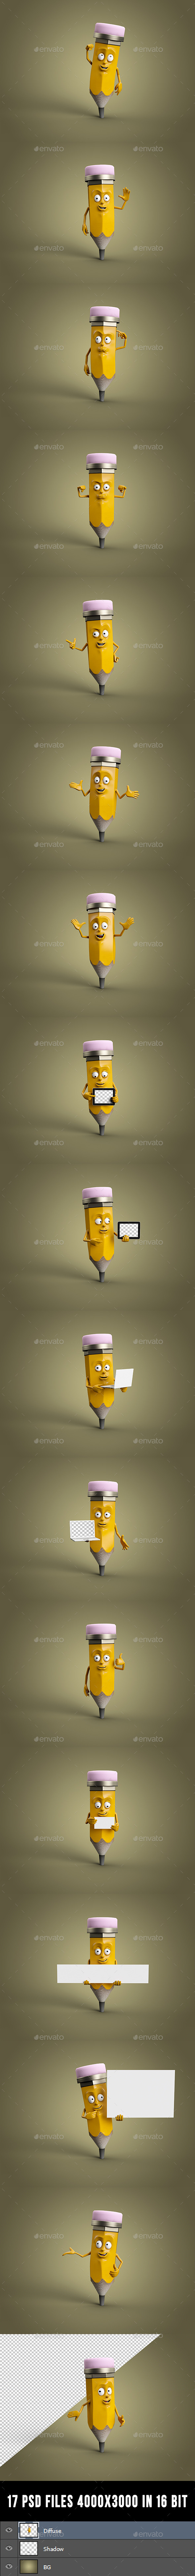 GraphicRiver Drawy 9866338